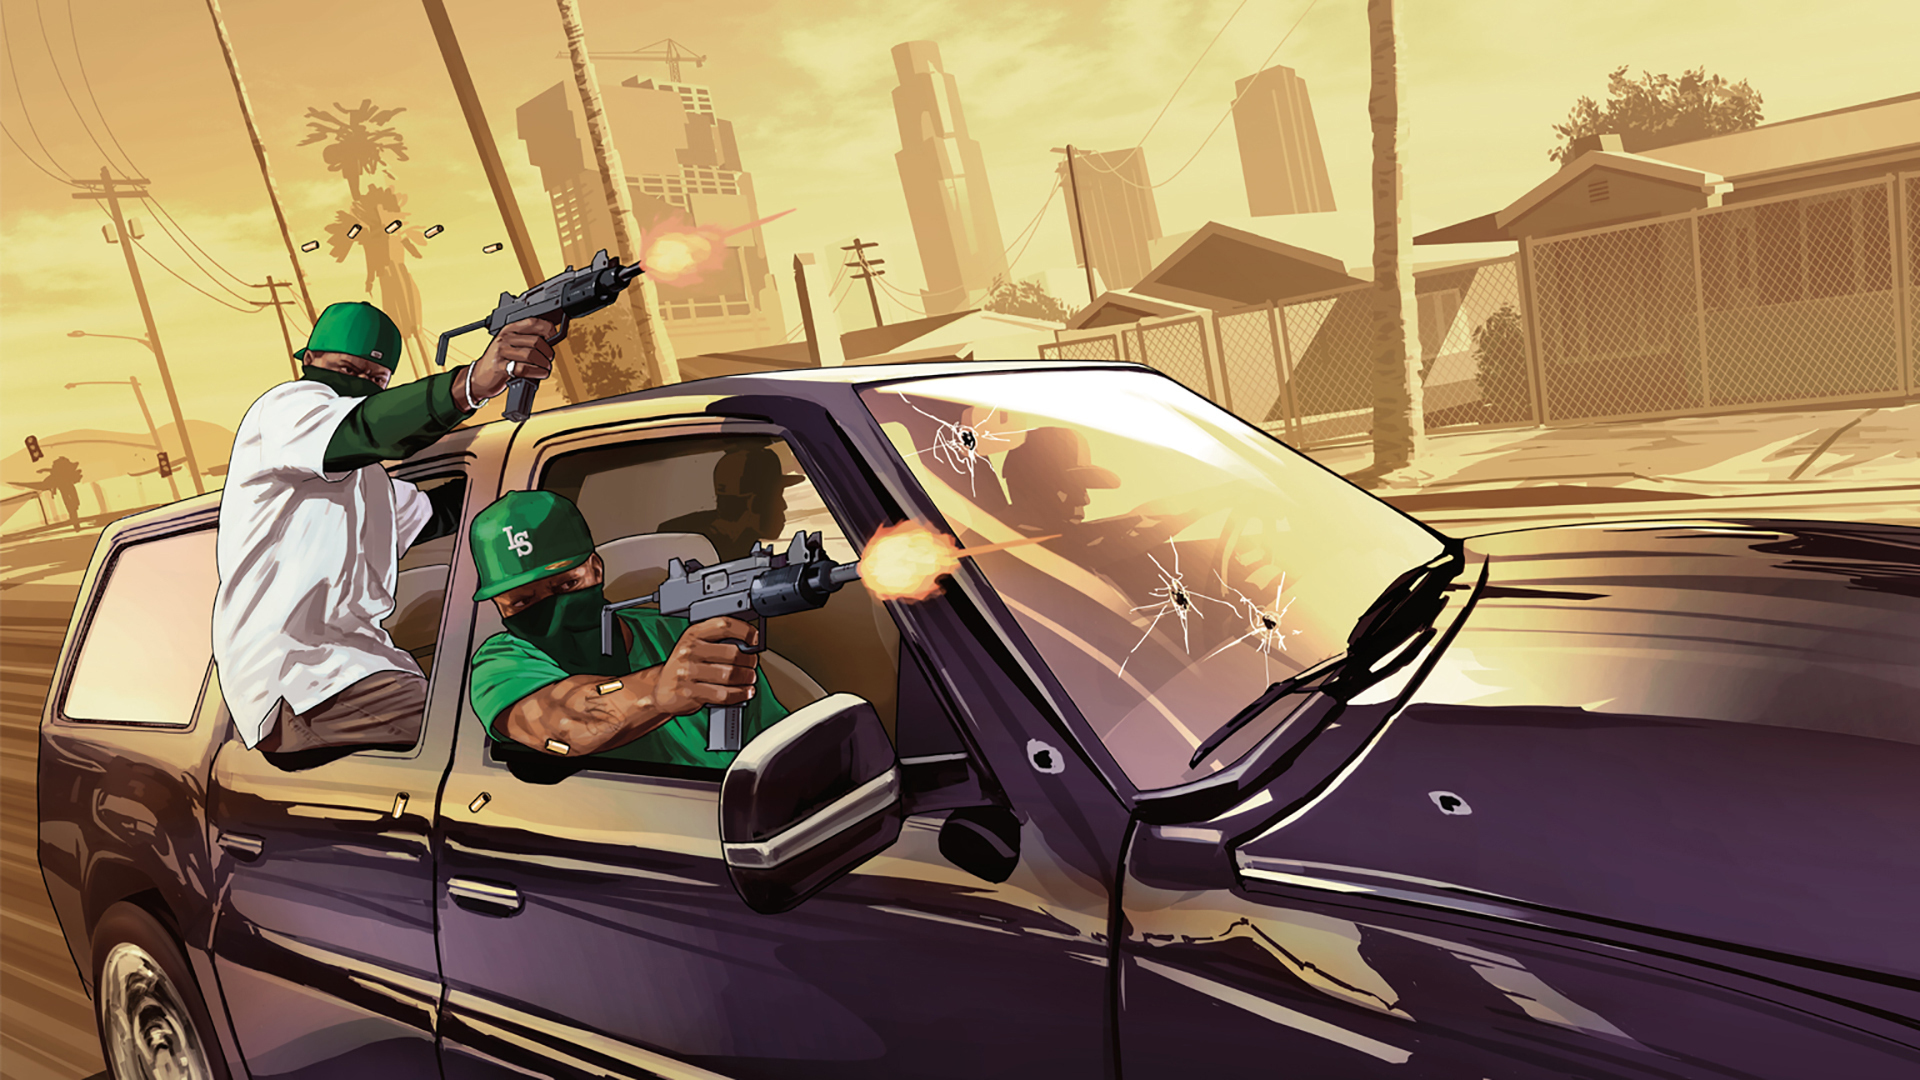 Wallpaper gta5 grove street los santos california gang wallpapers 1920x1080